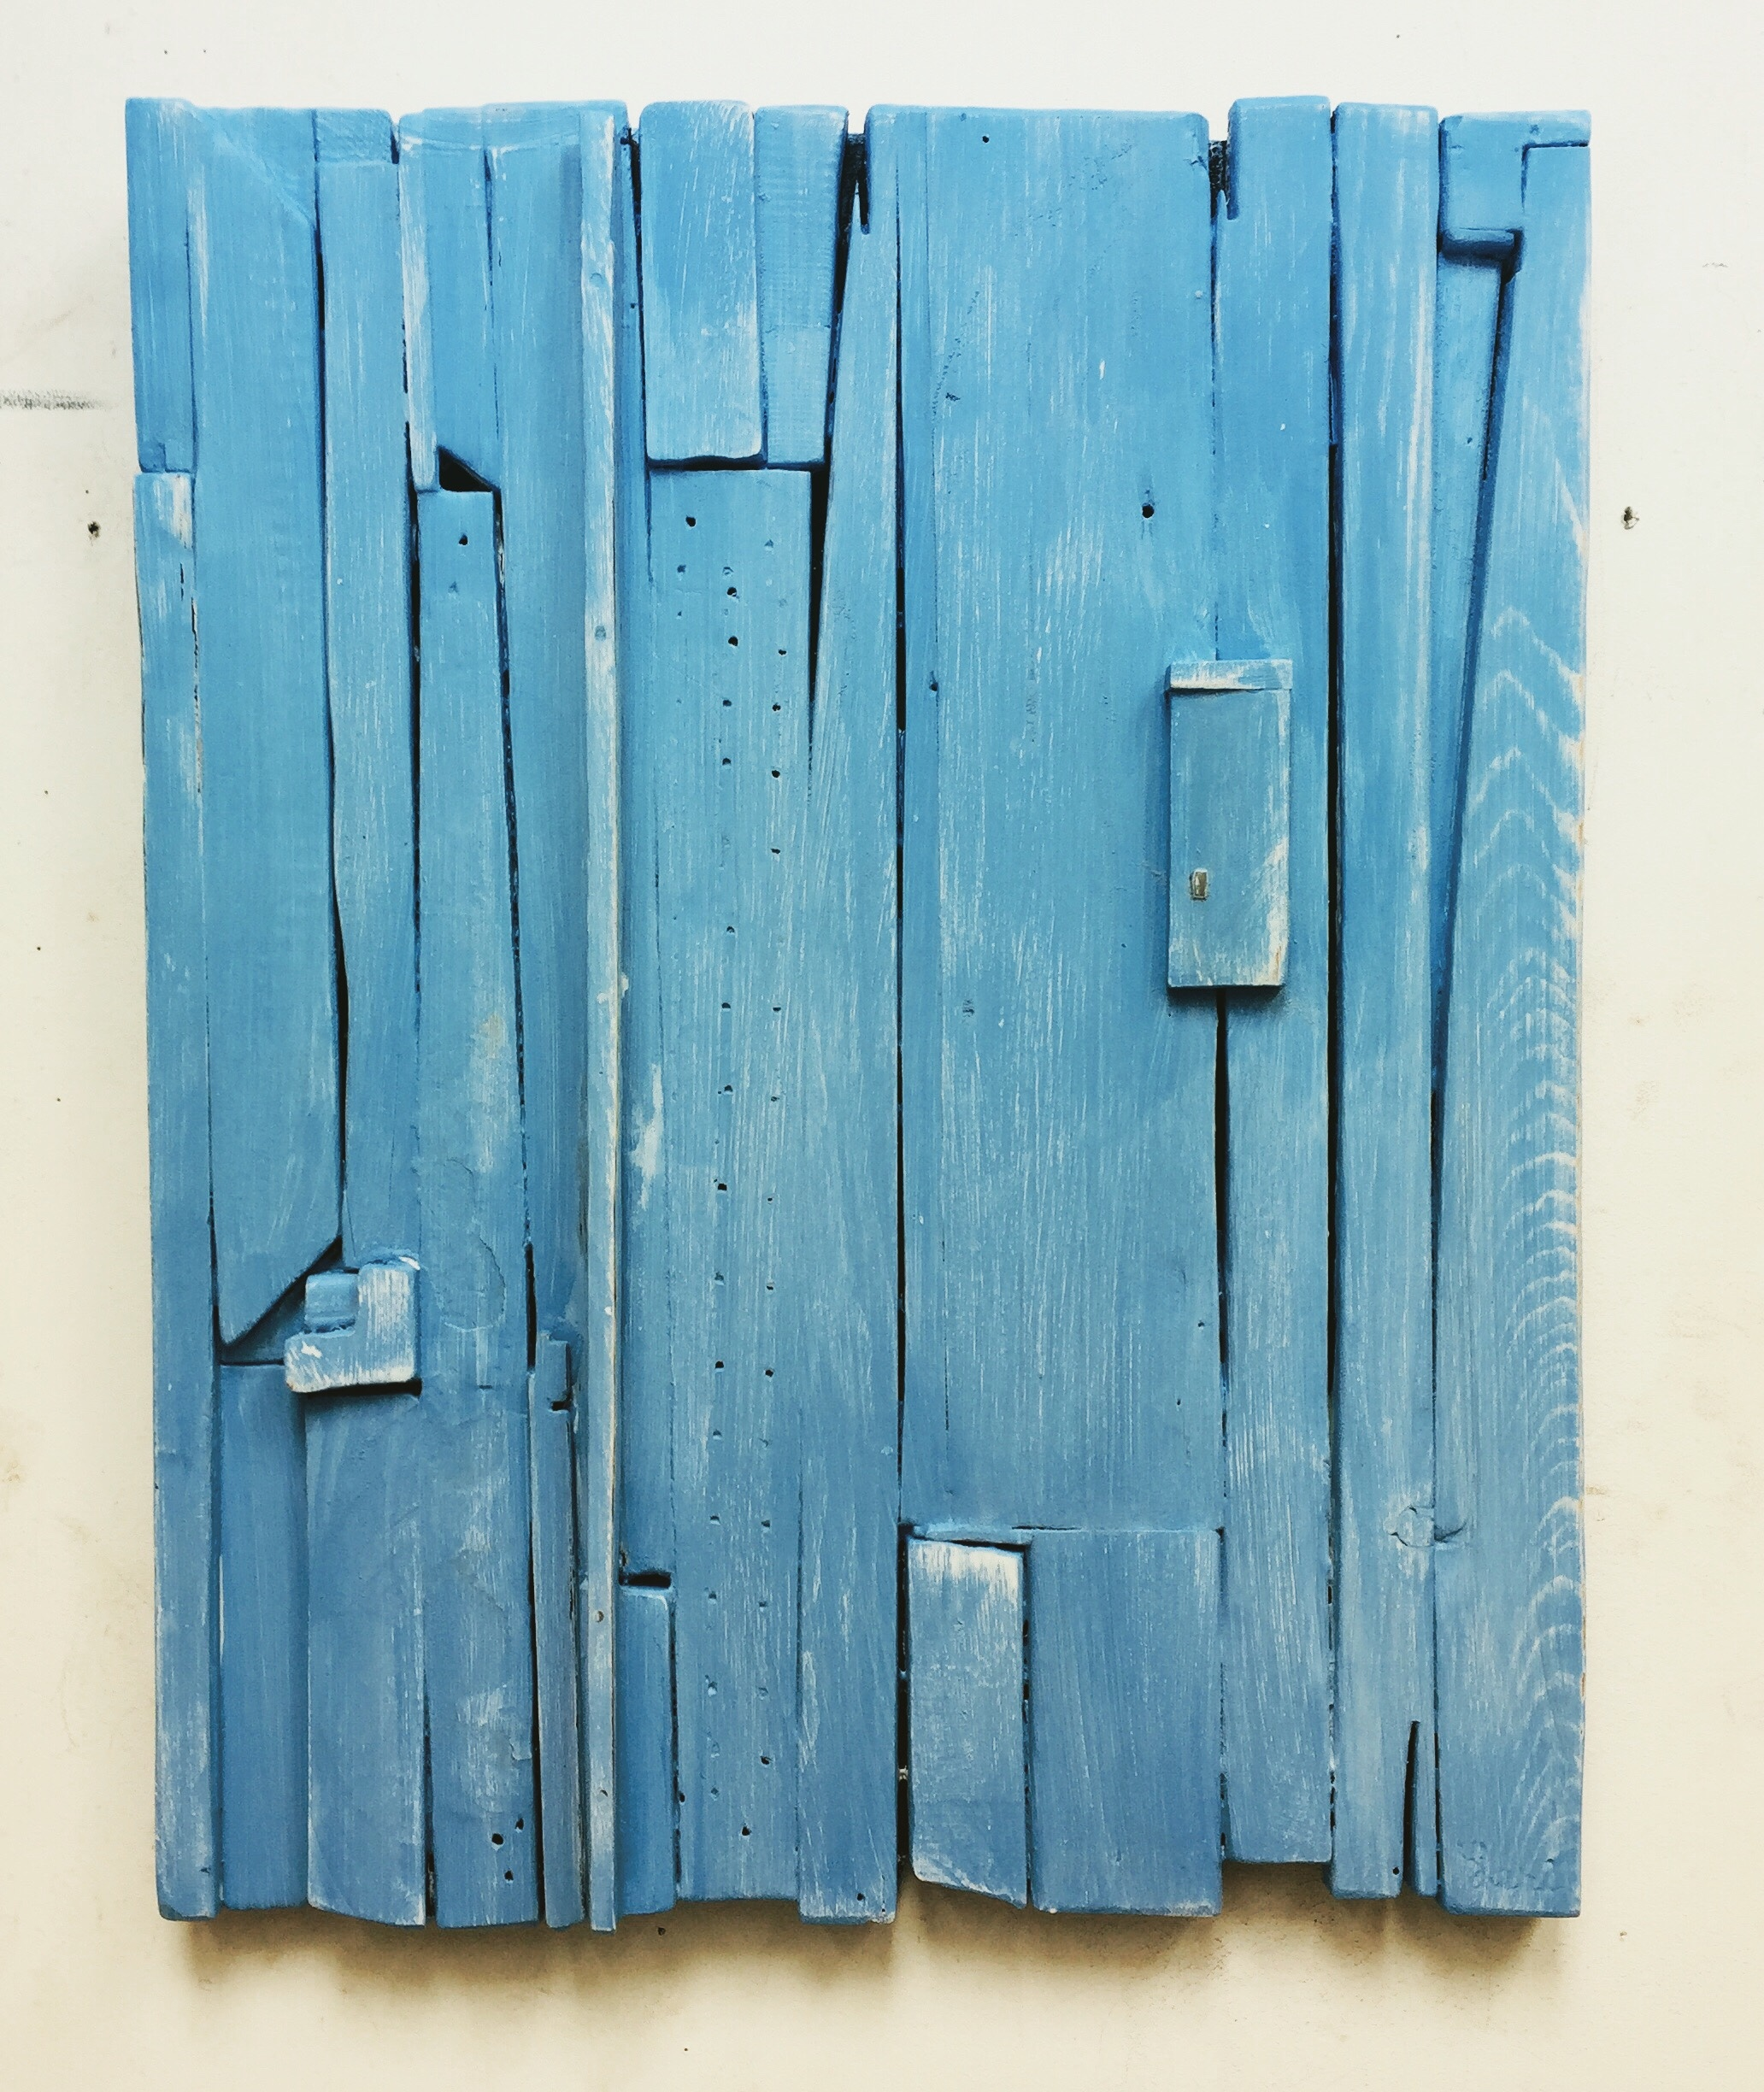 Summer Blue by Dennis Leri, 2018, acrylic on layered wood, 23 x 18 in, $3000